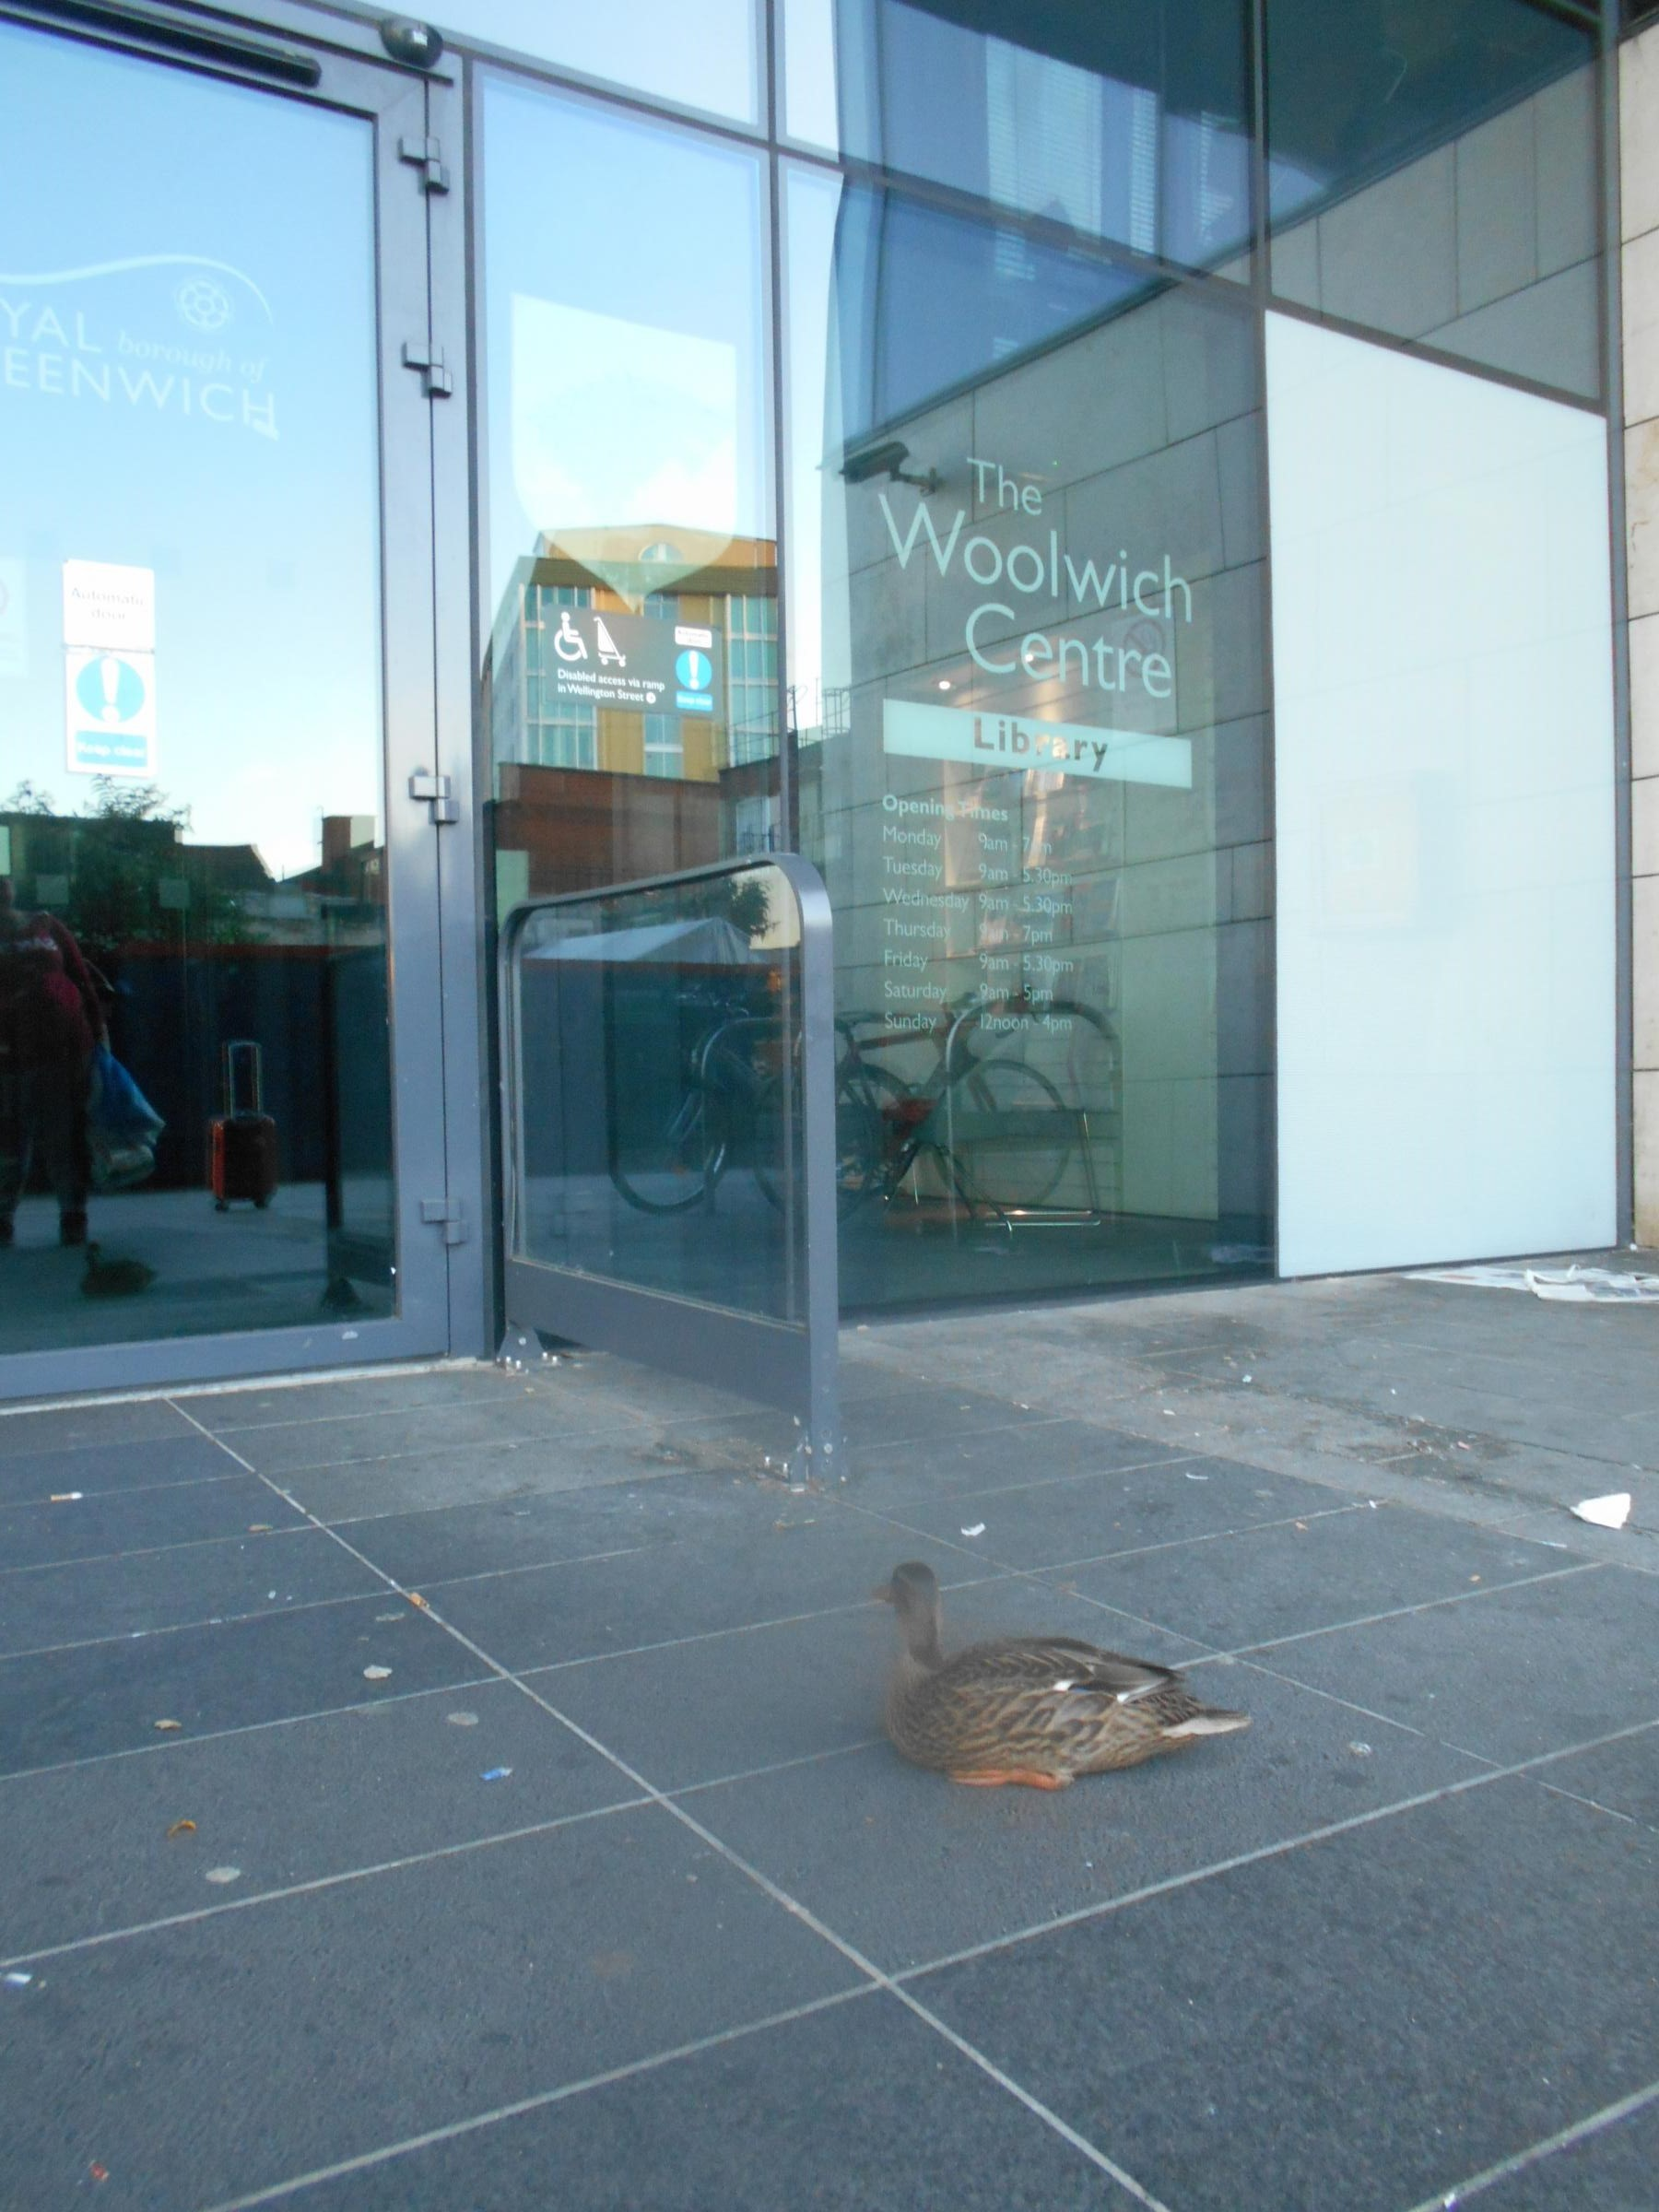 Even the ducks want to visit Woolwich Library